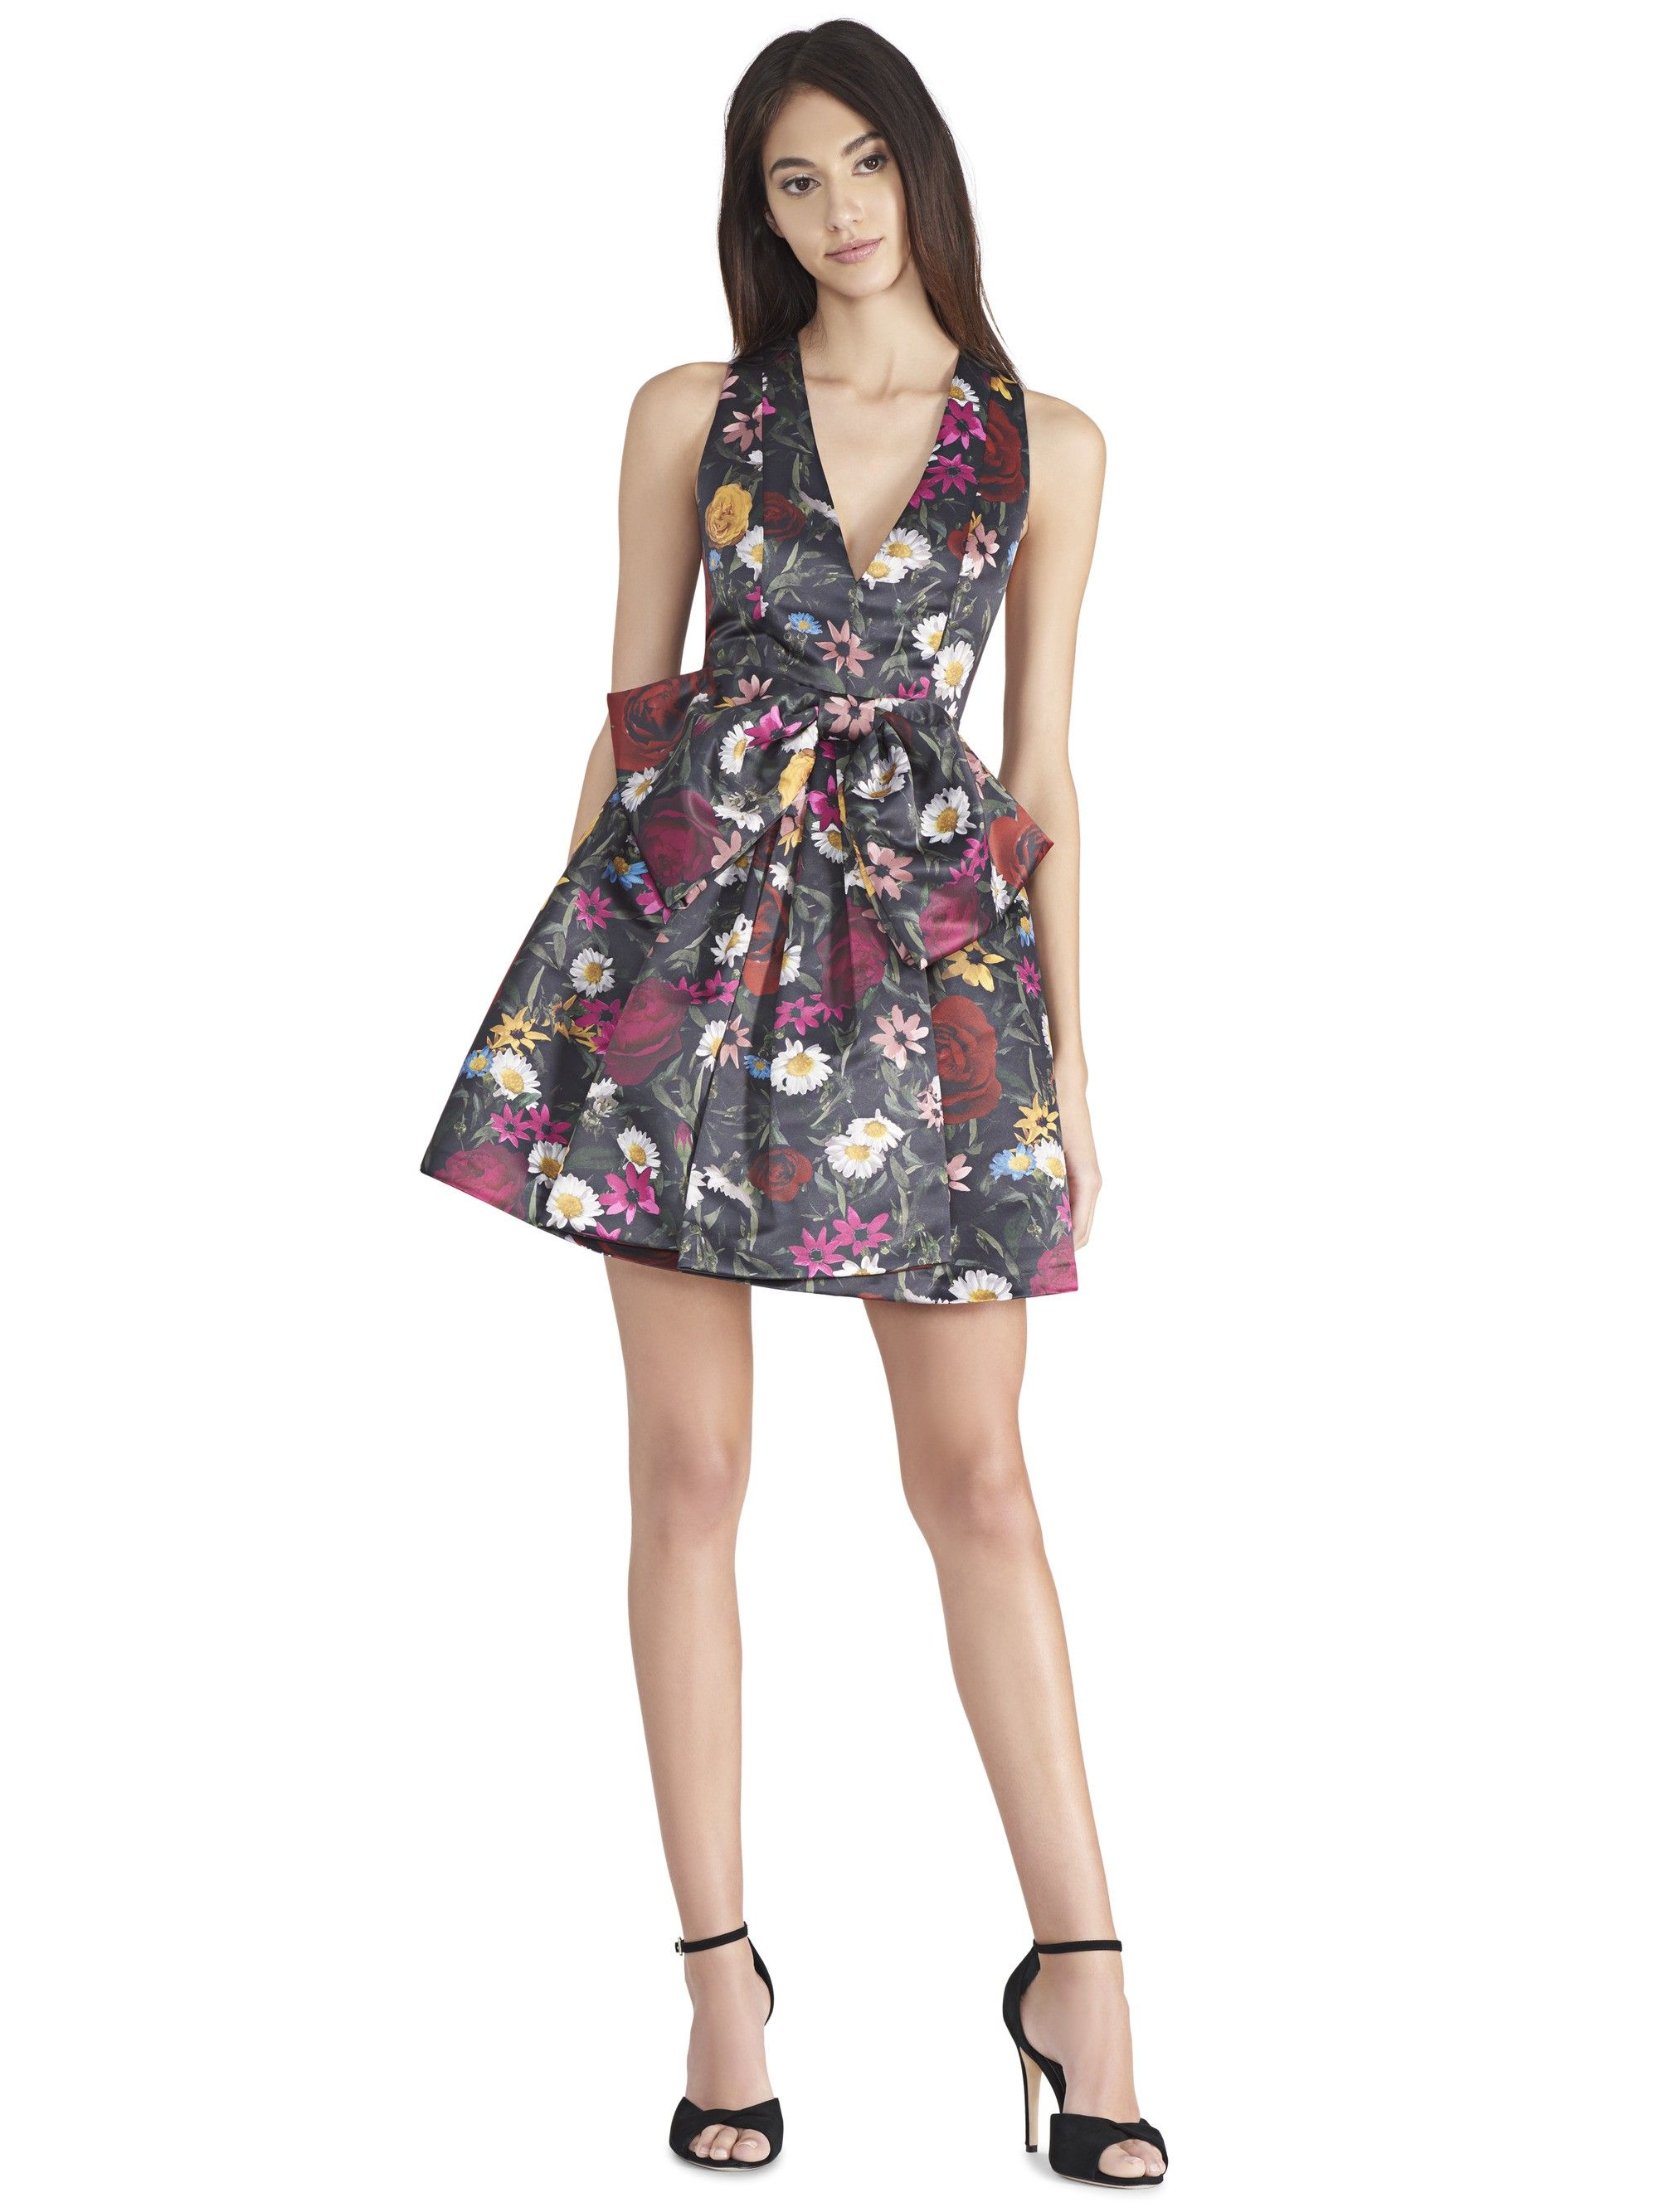 4566b8458 ALICE AND OLIVIA DARALEE BOW FRONT PARTY DRESS - VIVID FLORAL ...